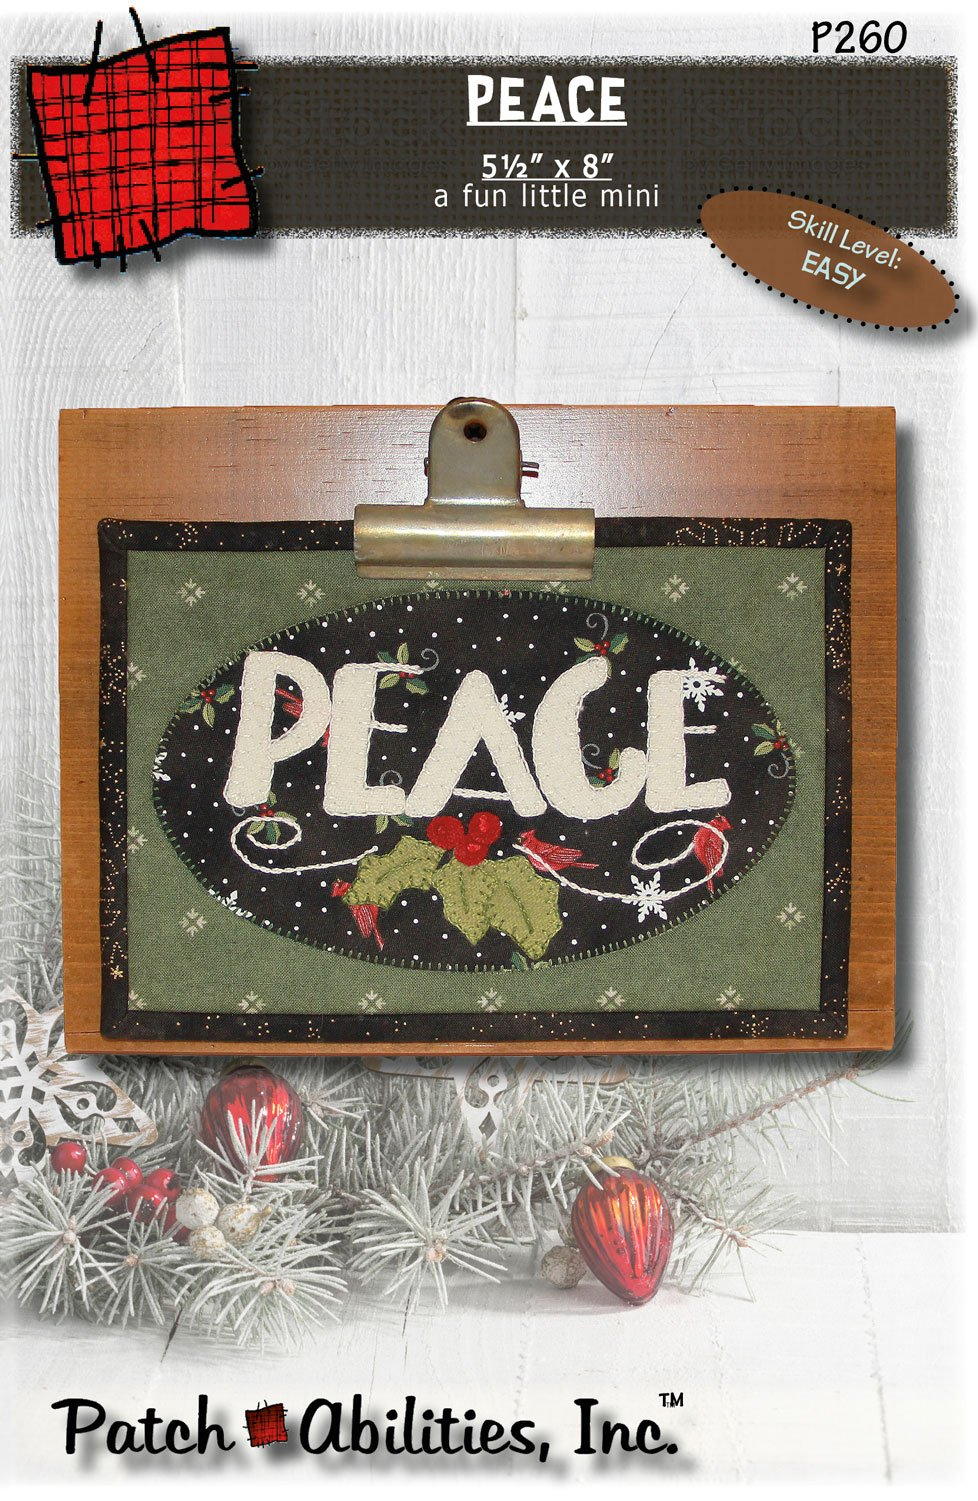 P260 Peace, a fun little mini DIGITAL DOWNLOAD PATTERN